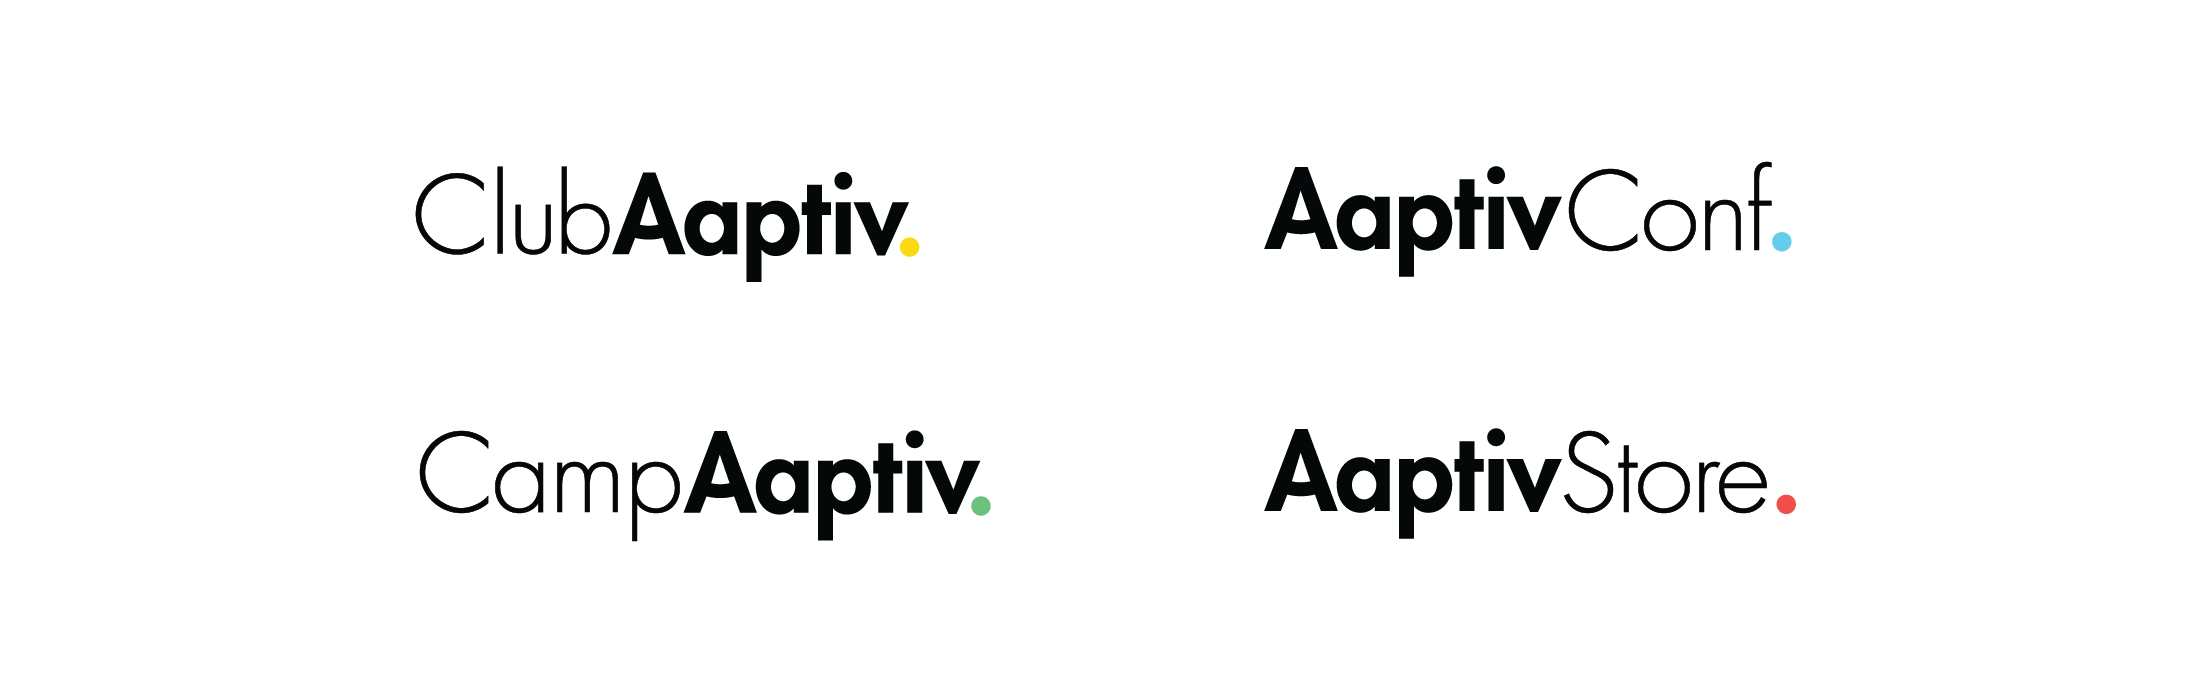 Aaptiv-extensions-02.png